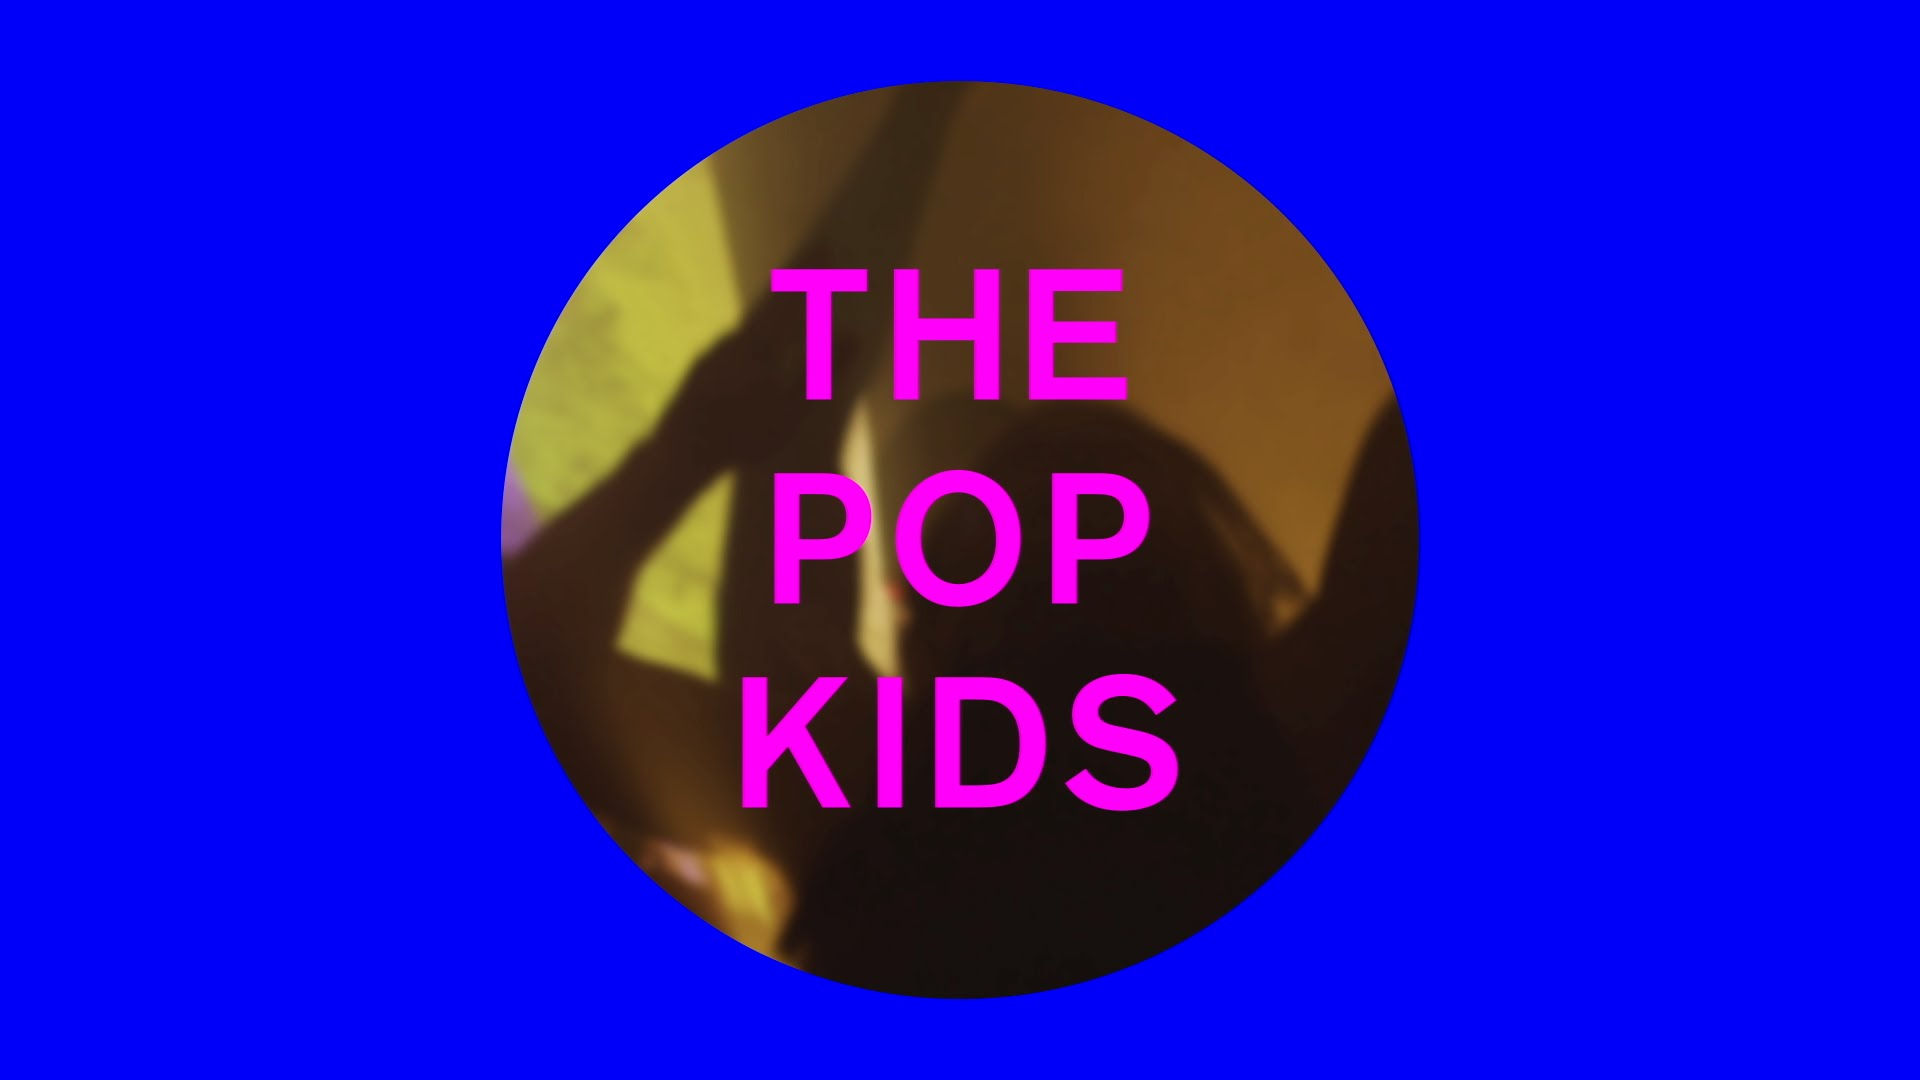 Pet Shop Boys relive the early '90s with new single 'The Pop Kids'